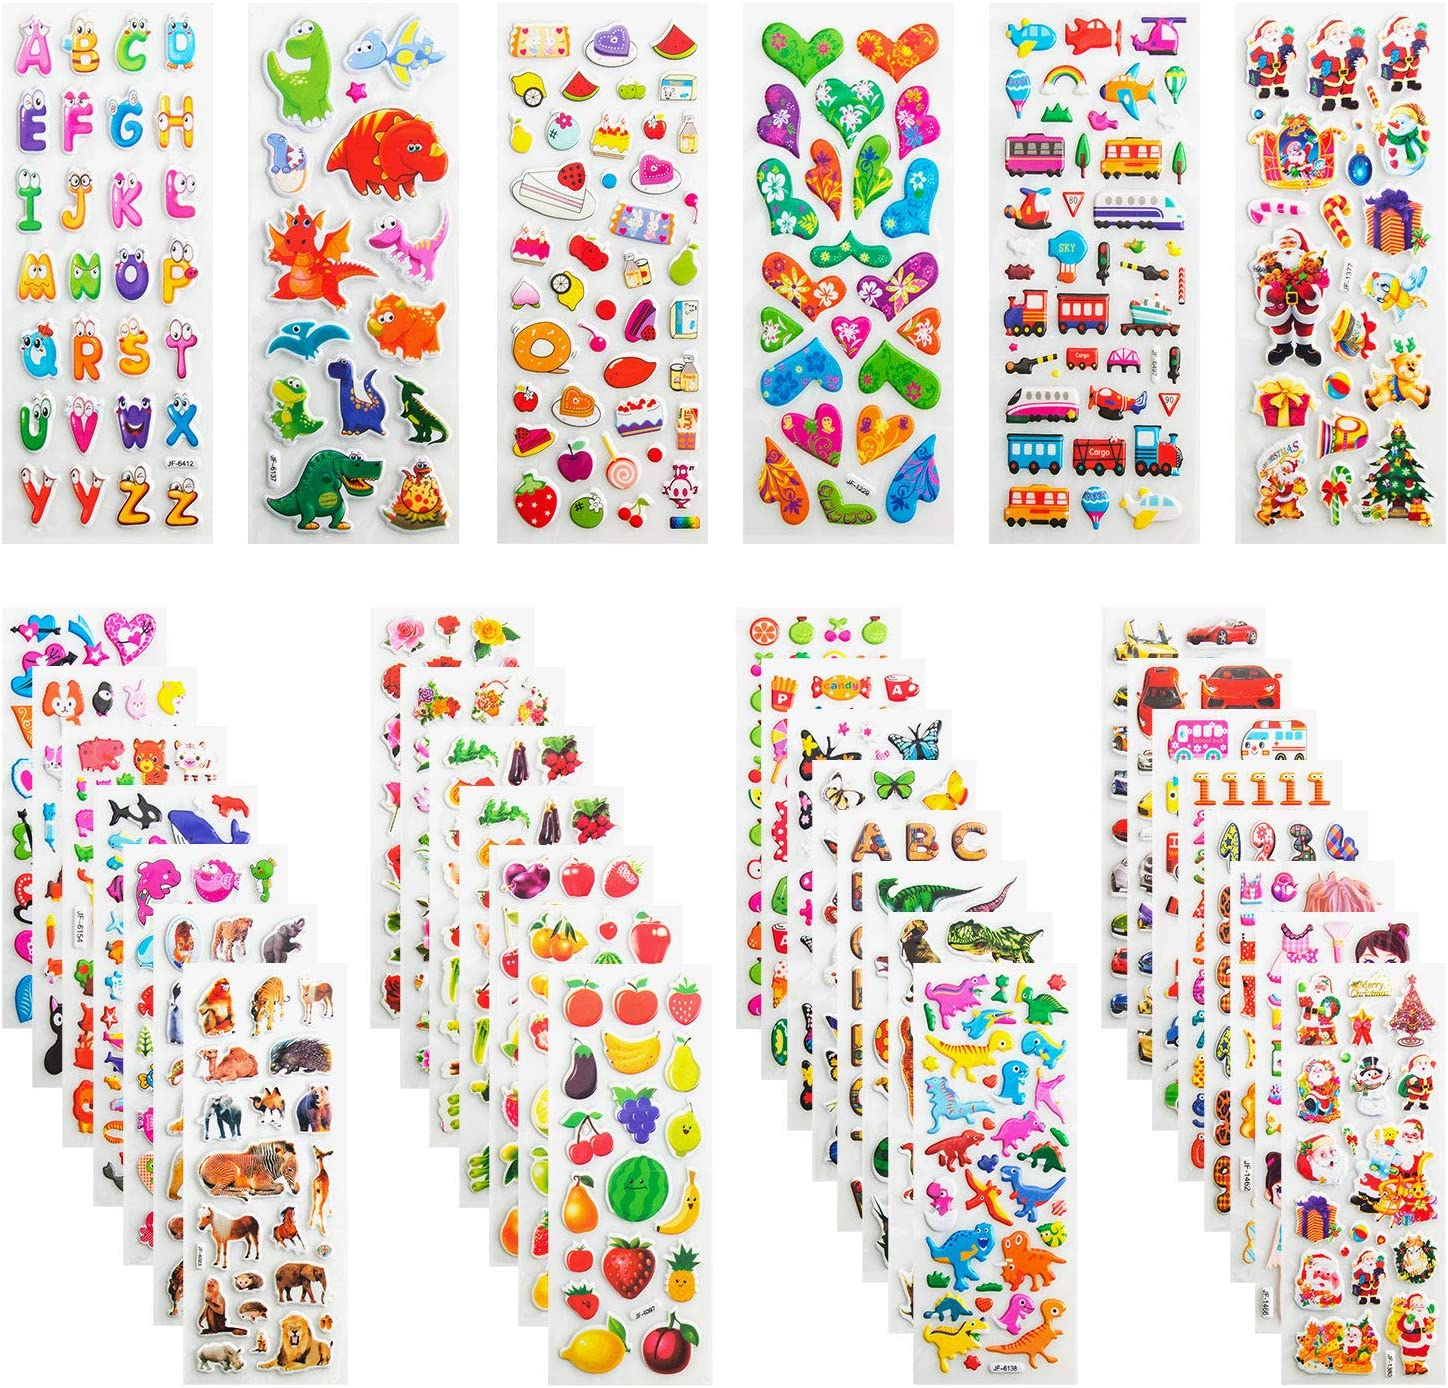 Habett Stickers for Kids Toddlers, 900+ 3D Puffy Kids Stickers, Bulk Stickers for Girl Boy Birthday Gift, Fun Stickers for Teachers, Reward, Craft Scrapbooking Including Letter, Numbers, Dinosaurs